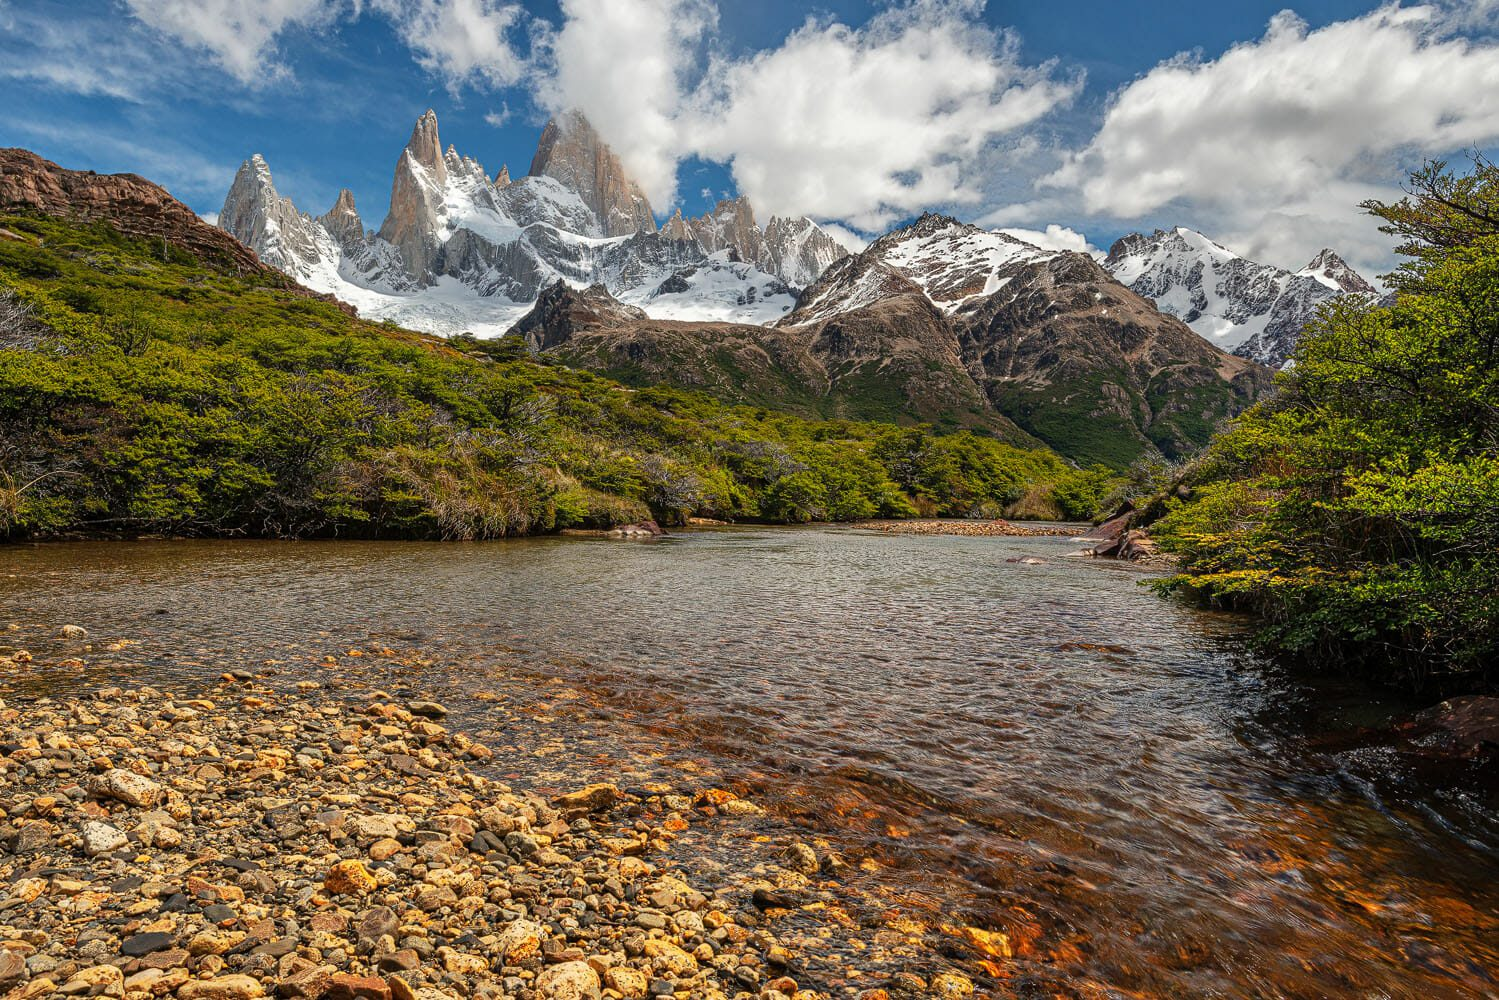 River and general view of the Fitz Roy mountain range